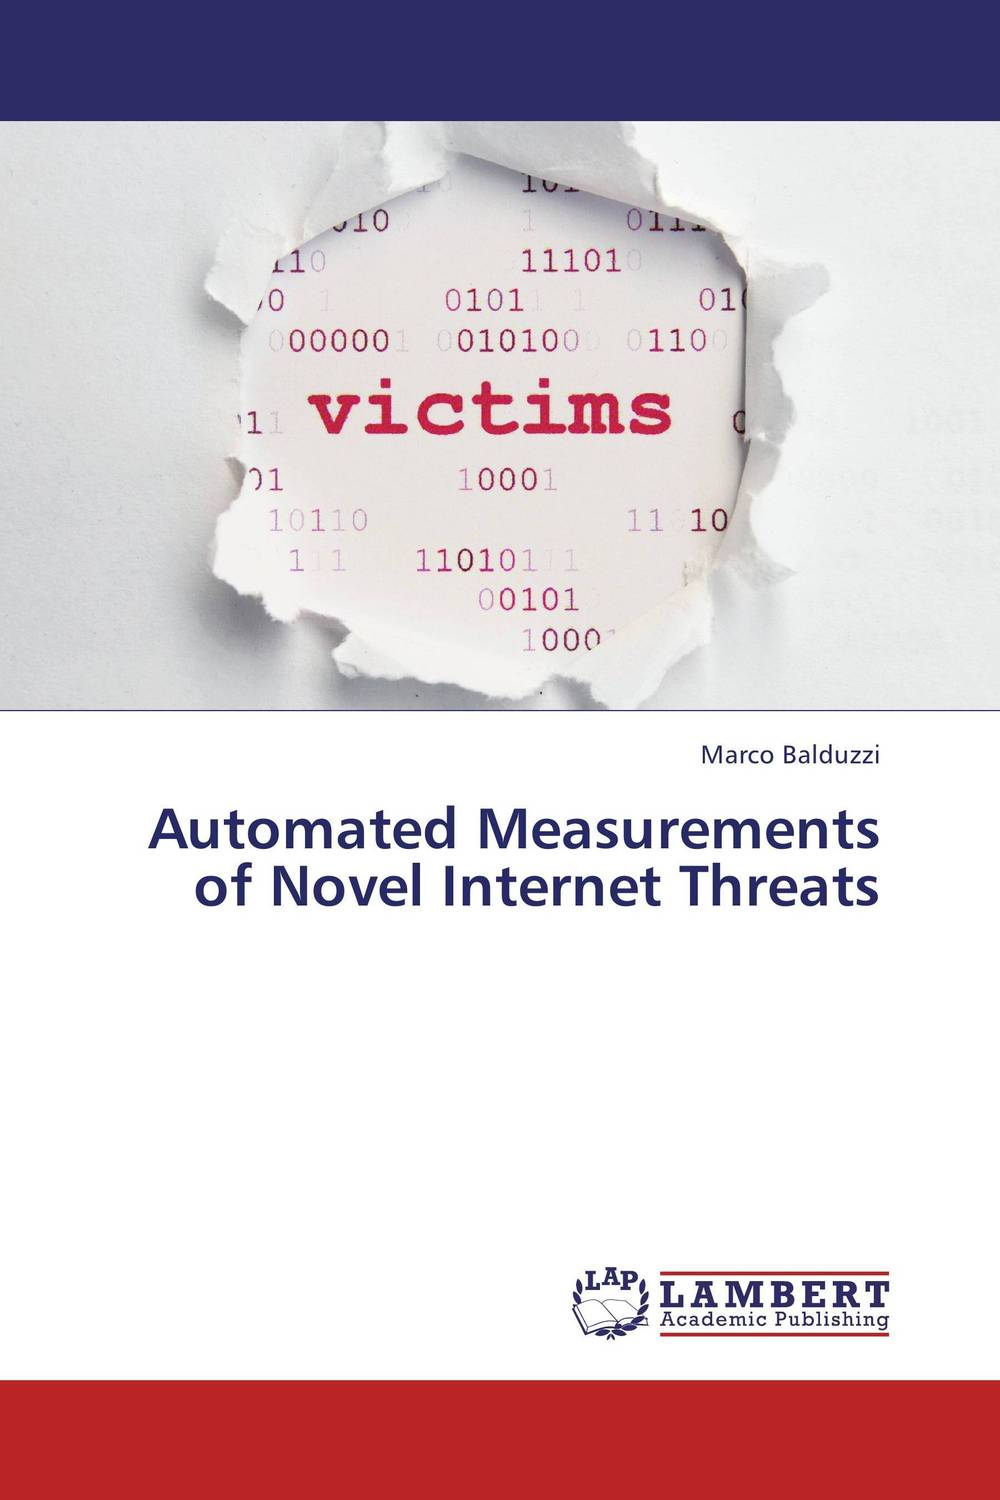 Automated Measurements of Novel Internet Threats driven to distraction